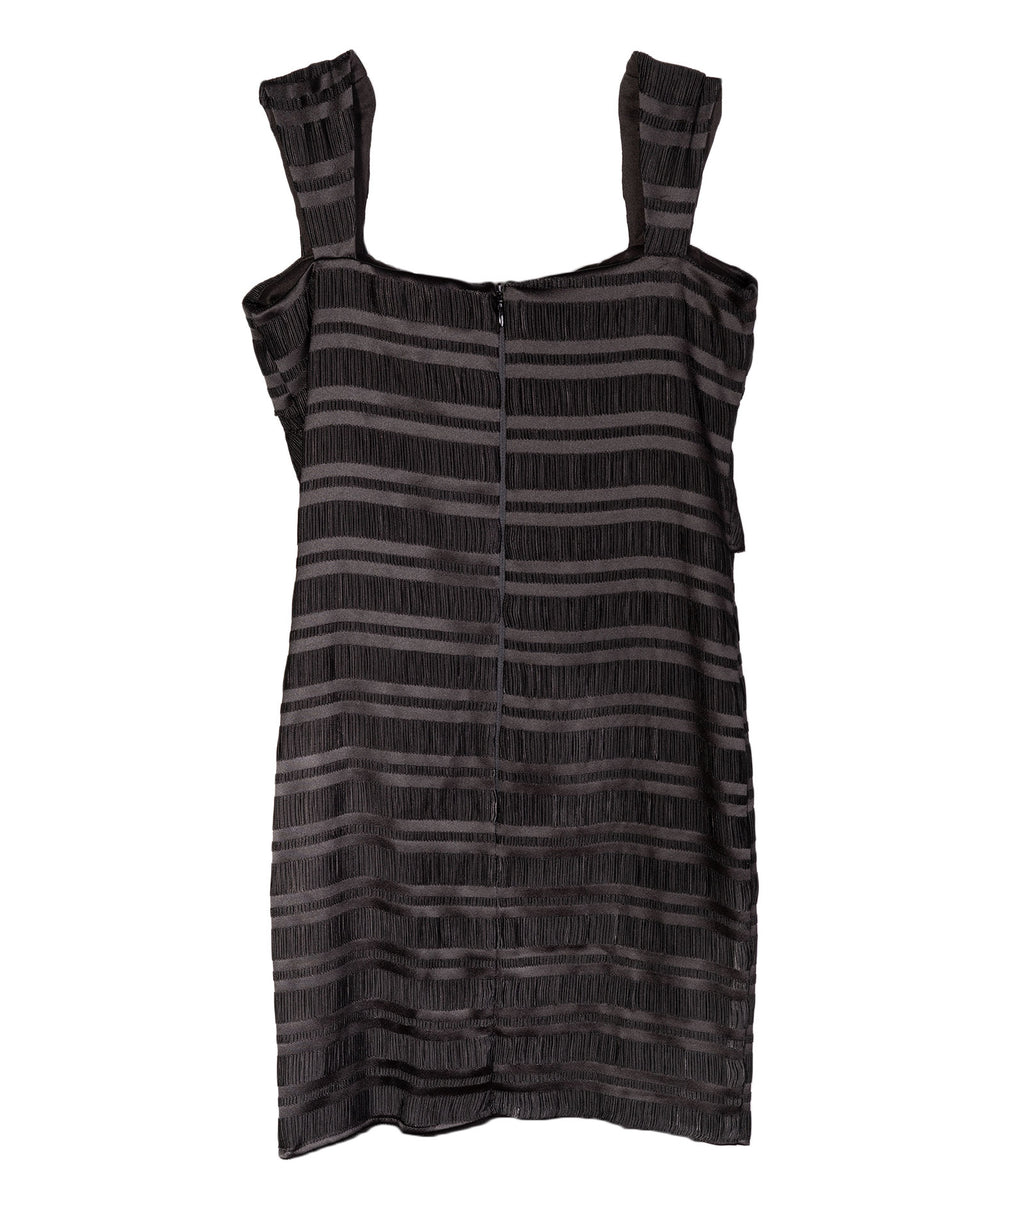 By Debra Girls Black Cross-Rib Dress